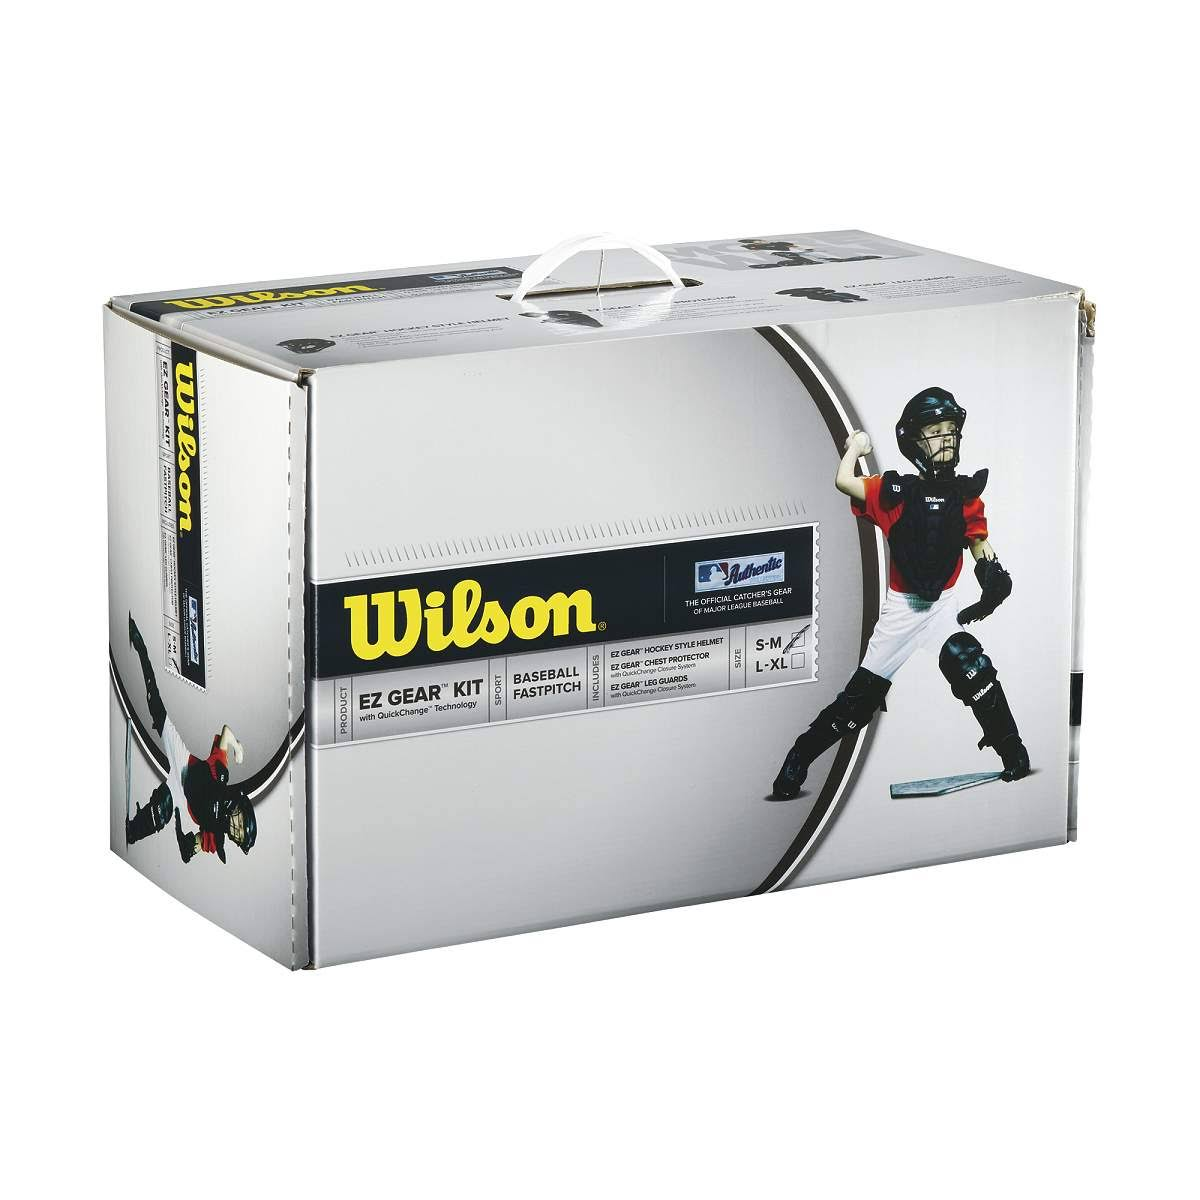 Wilson Ez Gear Youth Catcher's Kit